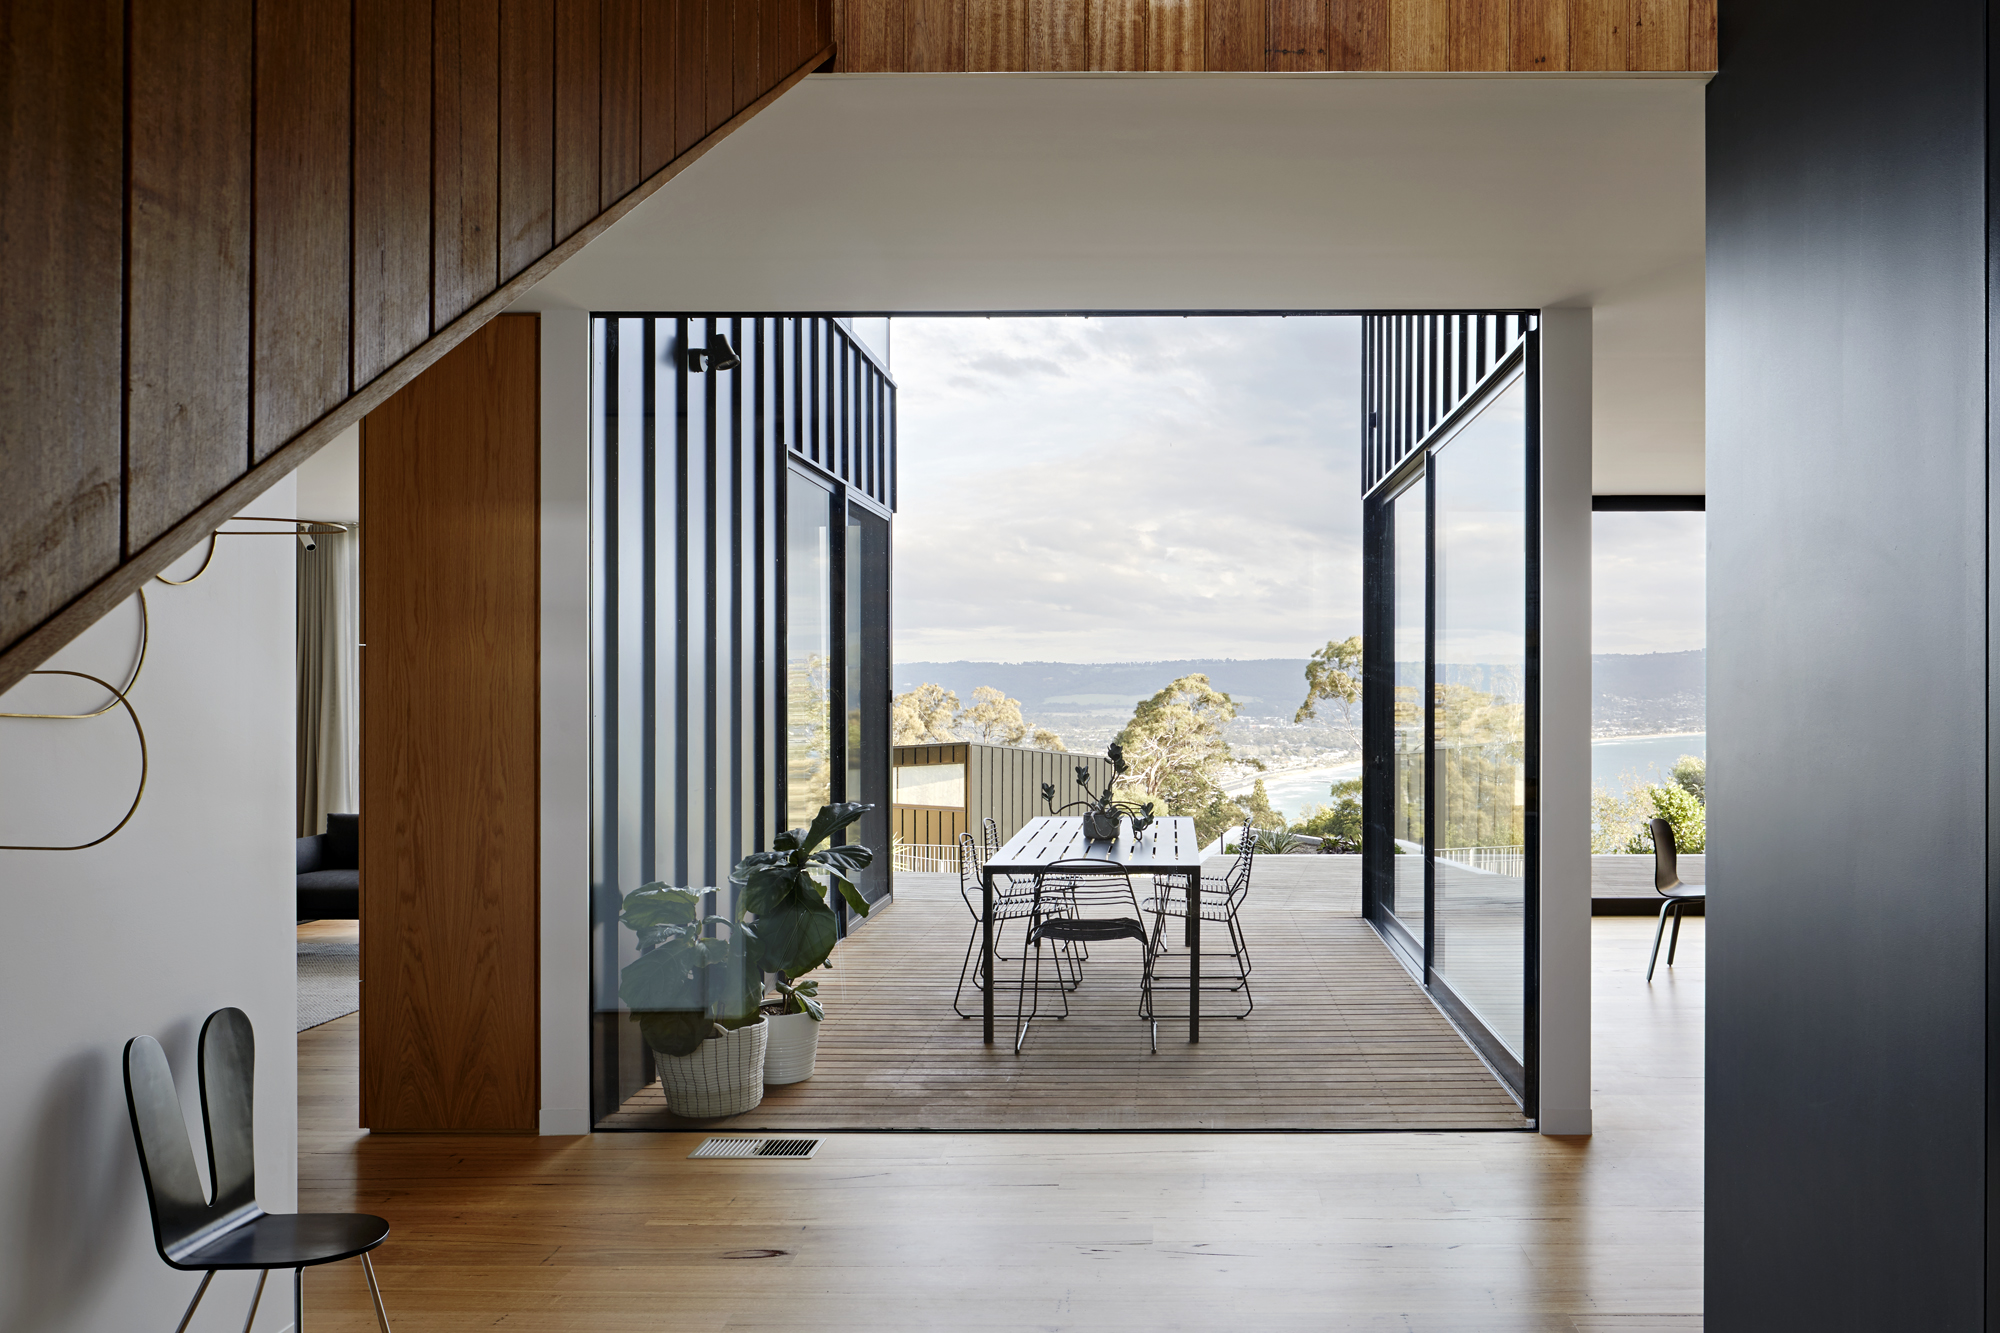 The Impressive Double Height Circulation Space Connects The Levels And The Front And Back Of The Property.